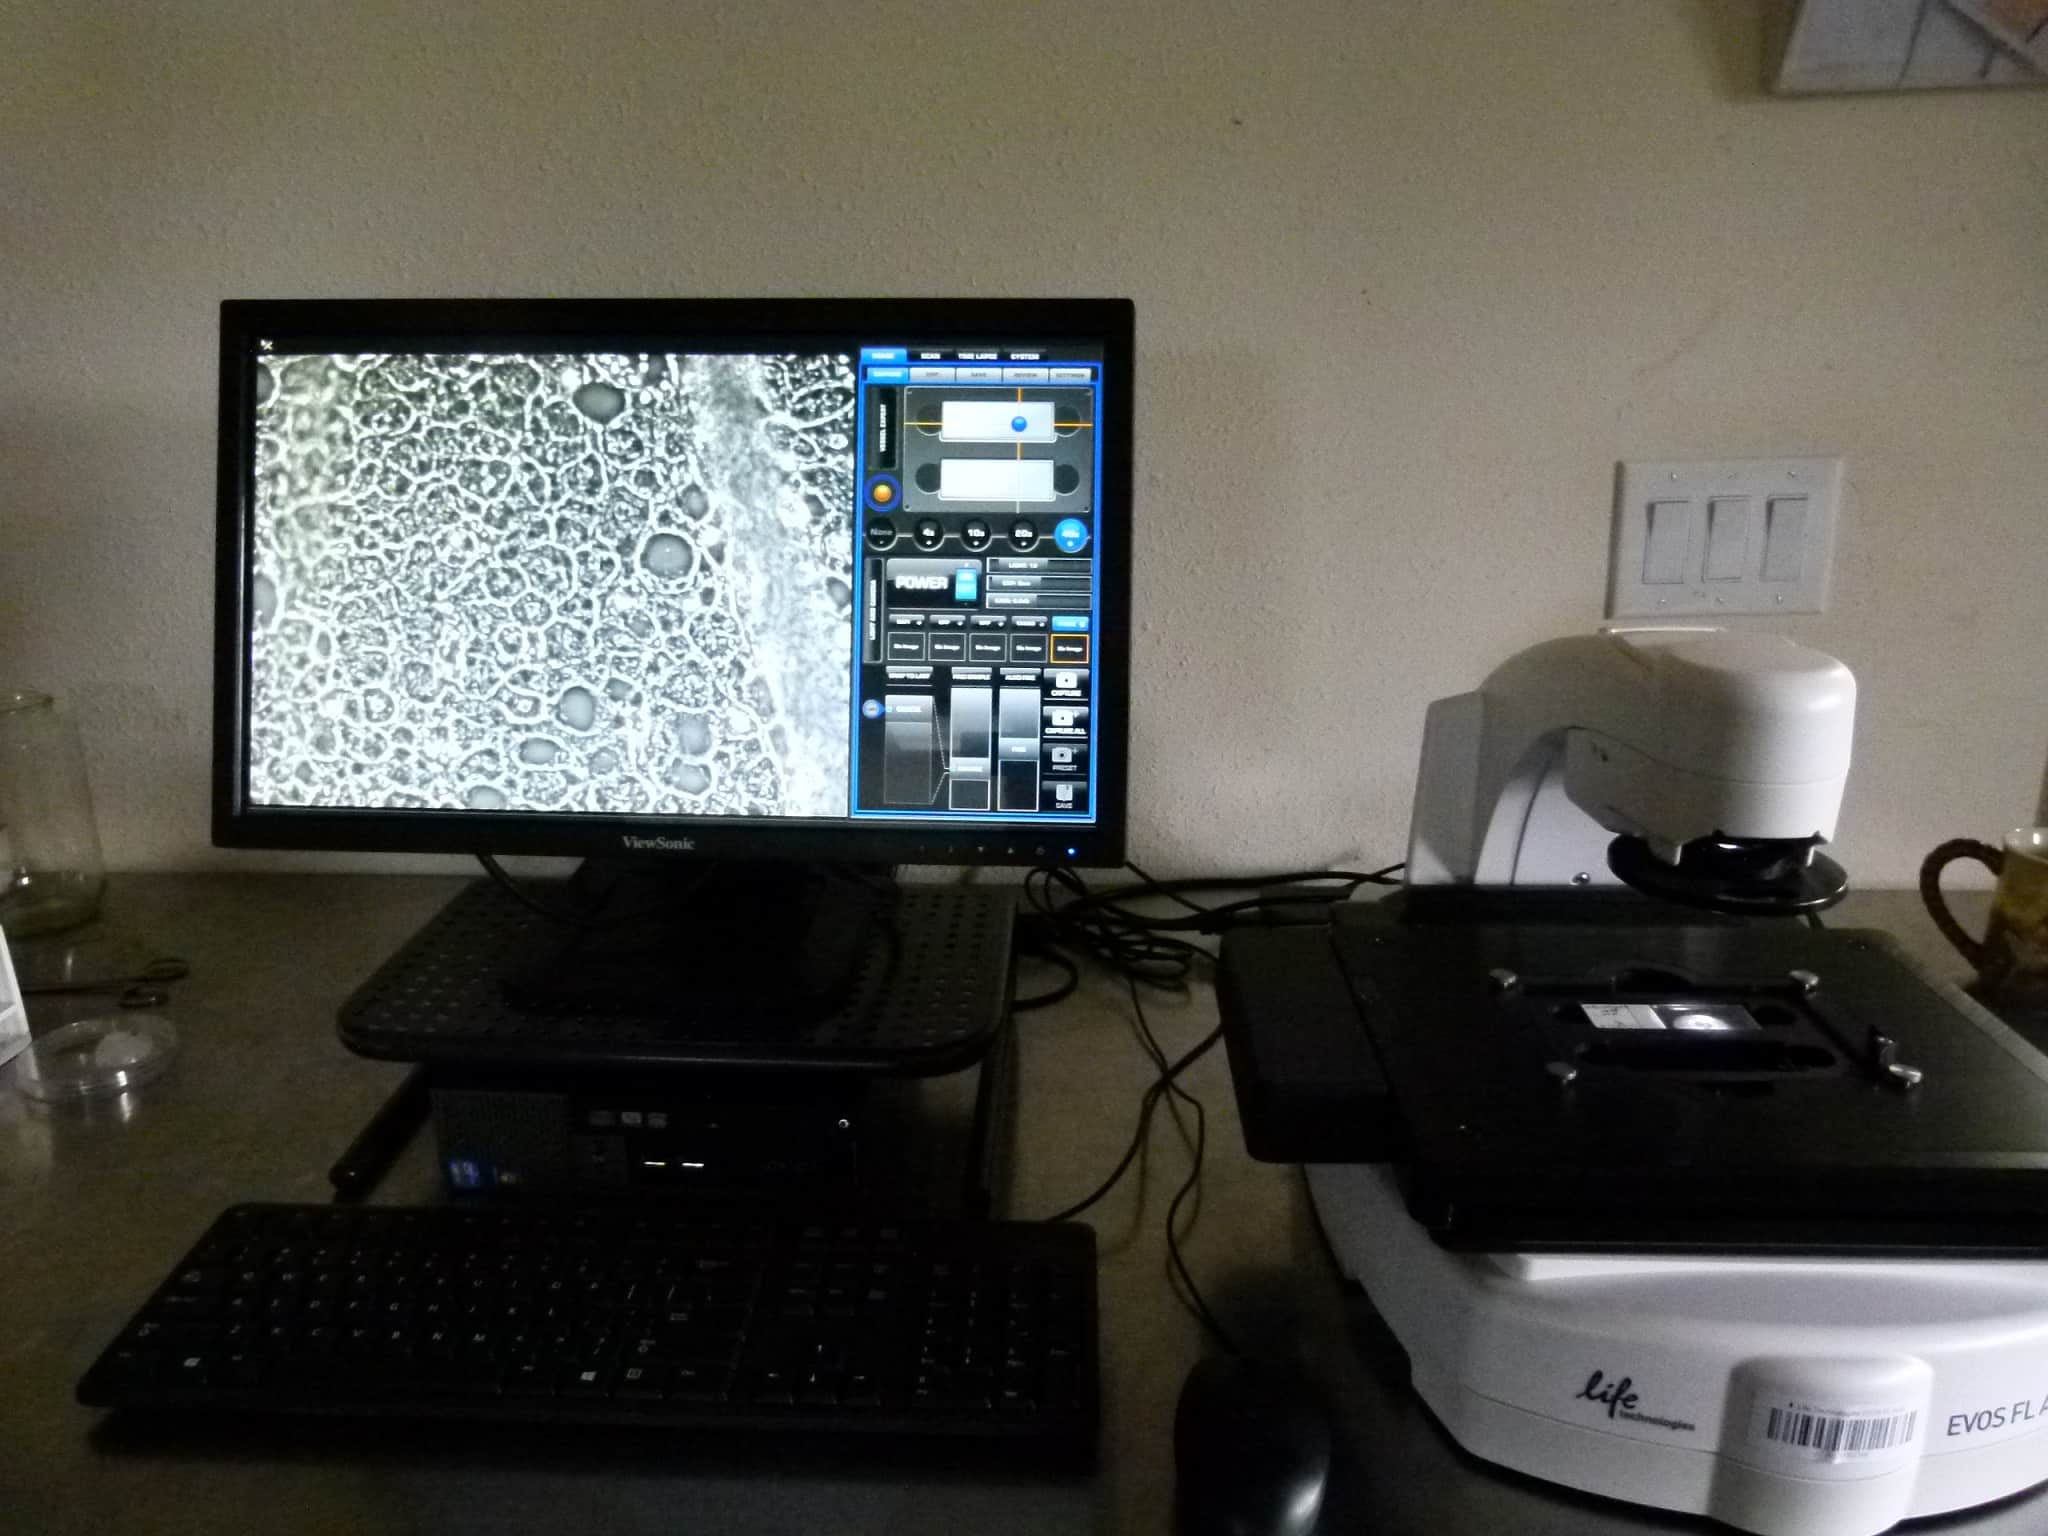 Life Technologies EVOS AUTO FL Fluorescence Imaging System with Accessories